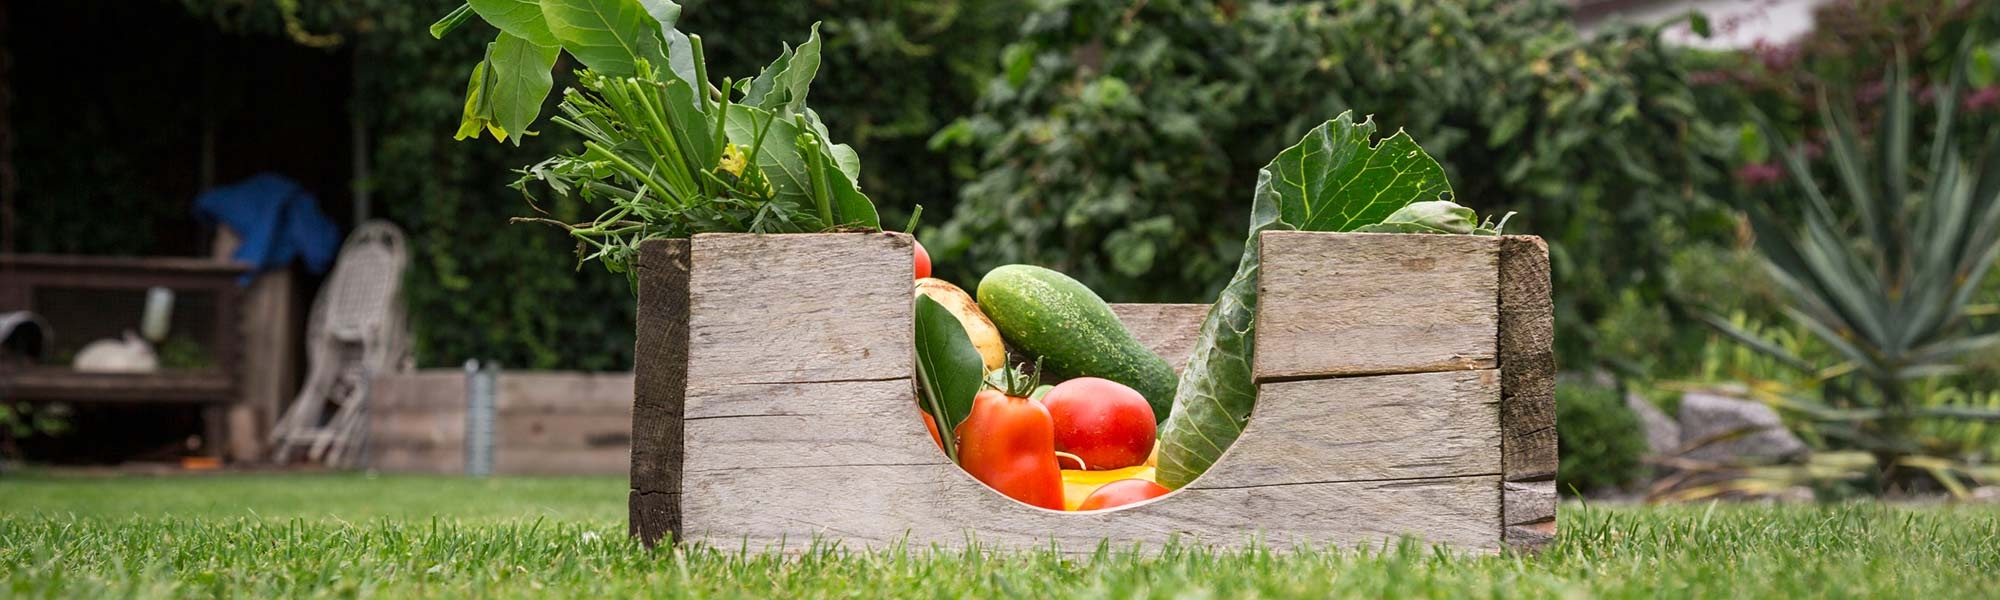 Box of fresh vegetables sitting in yard of green grass